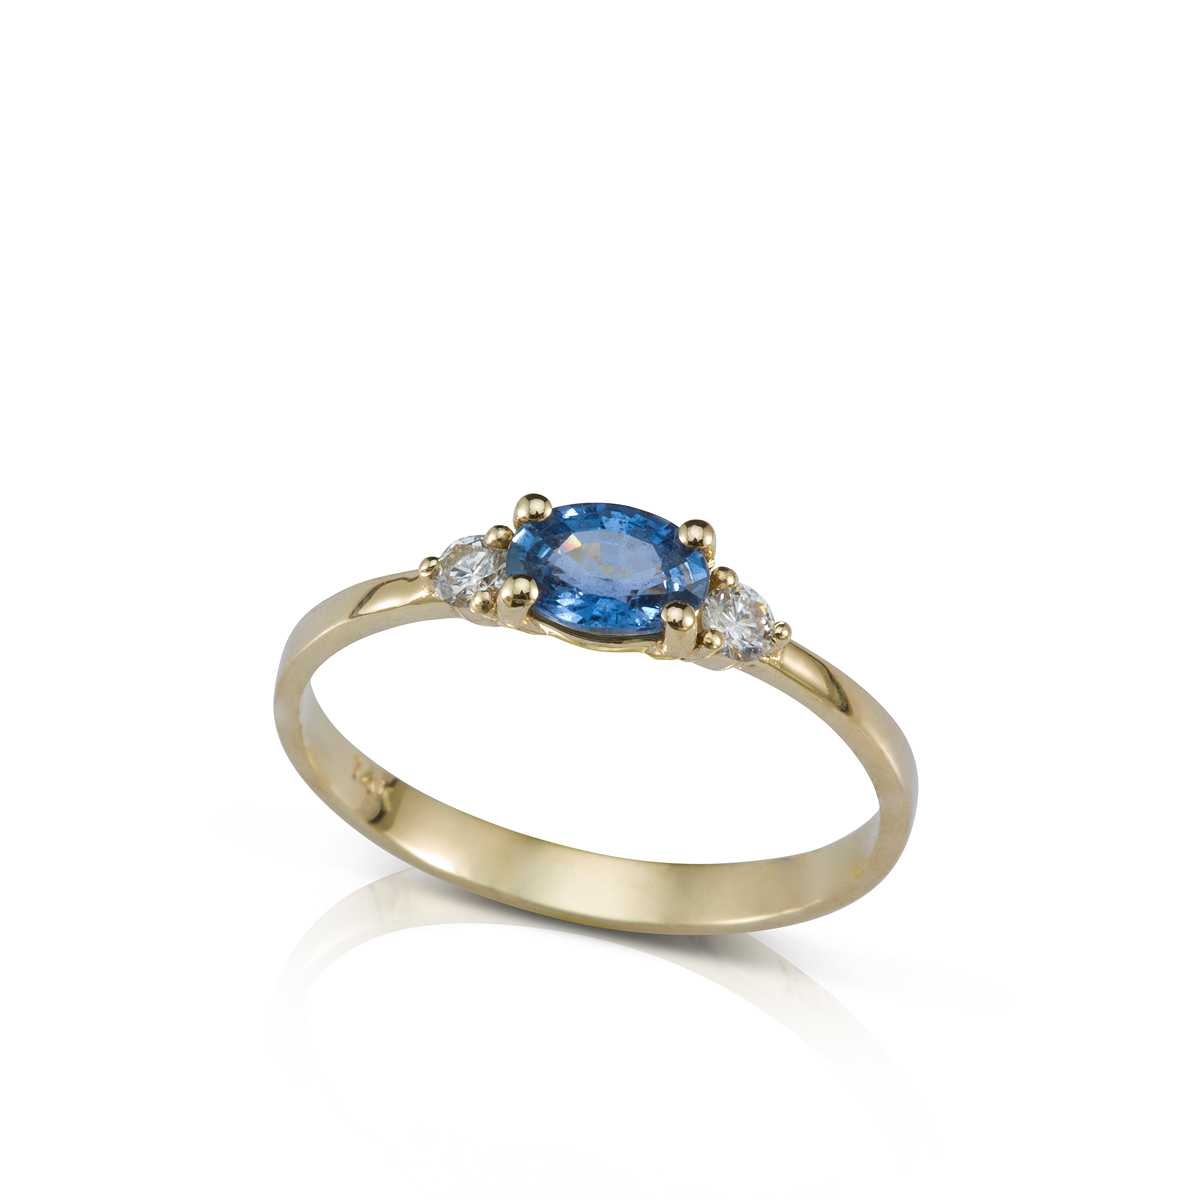 Solitaire ring set with 2 diamonds and an oval cut sapphire